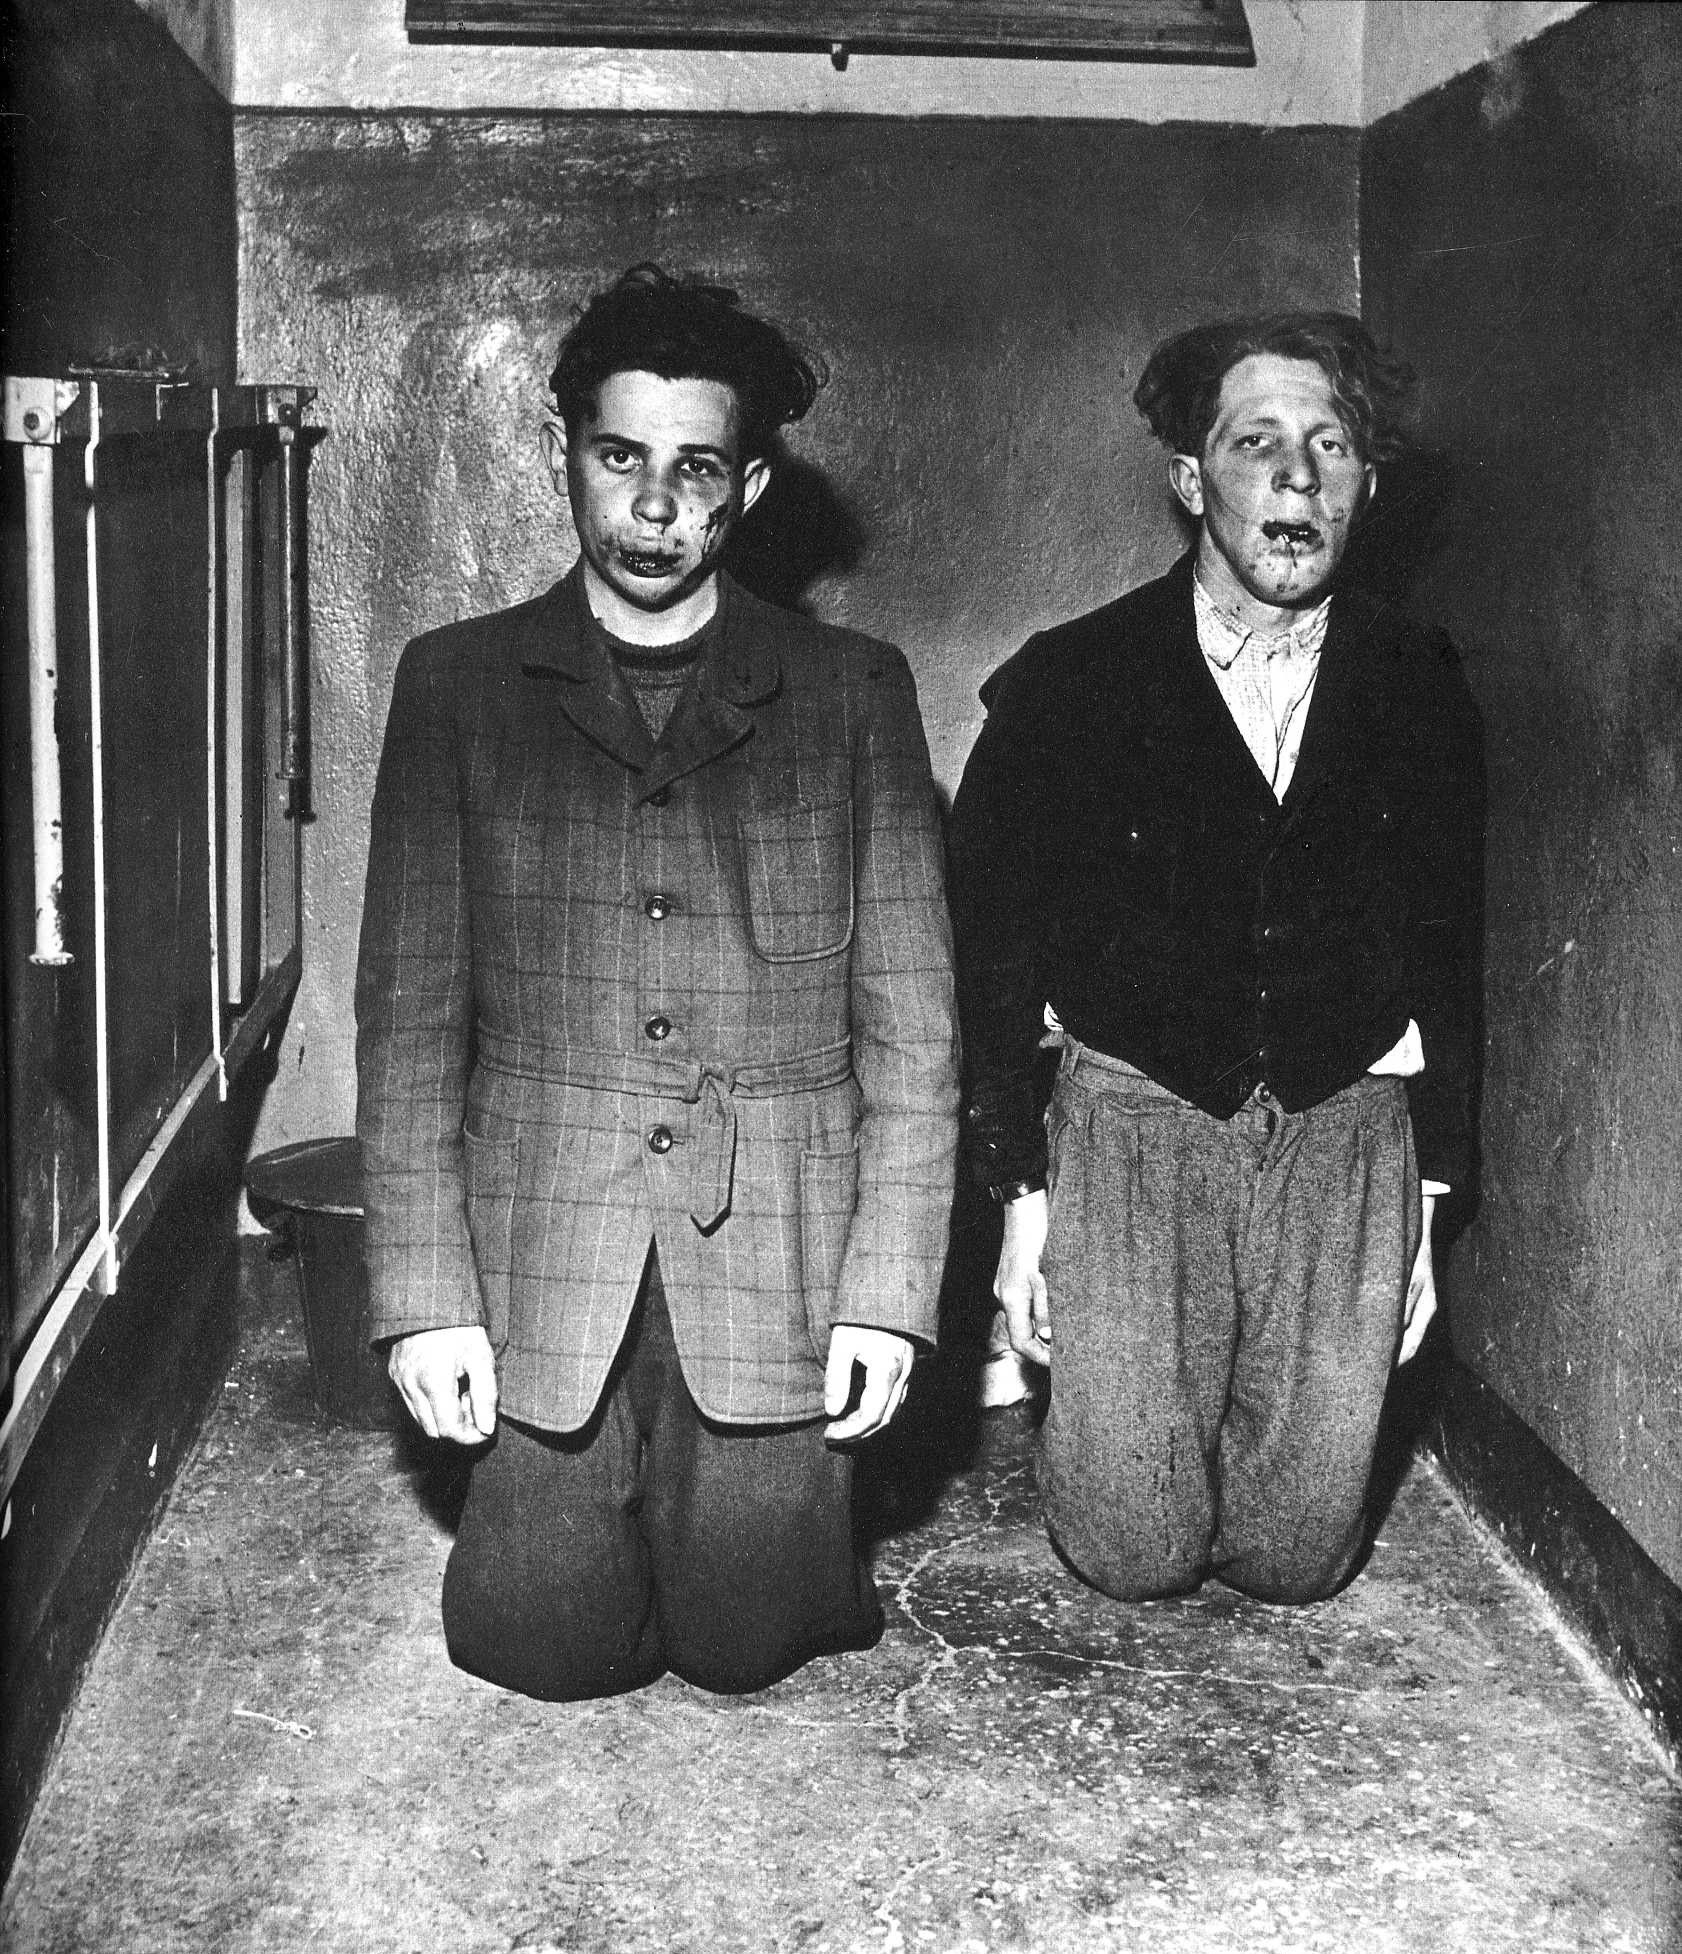 a recollection of world war ii and adolf hitlers atrocities by survivor elie wiesel I have a clearer recollection of the gassing of 900  the world never forgets the atrocities of world war ii  bu's elie wiesel center for jewish studies.